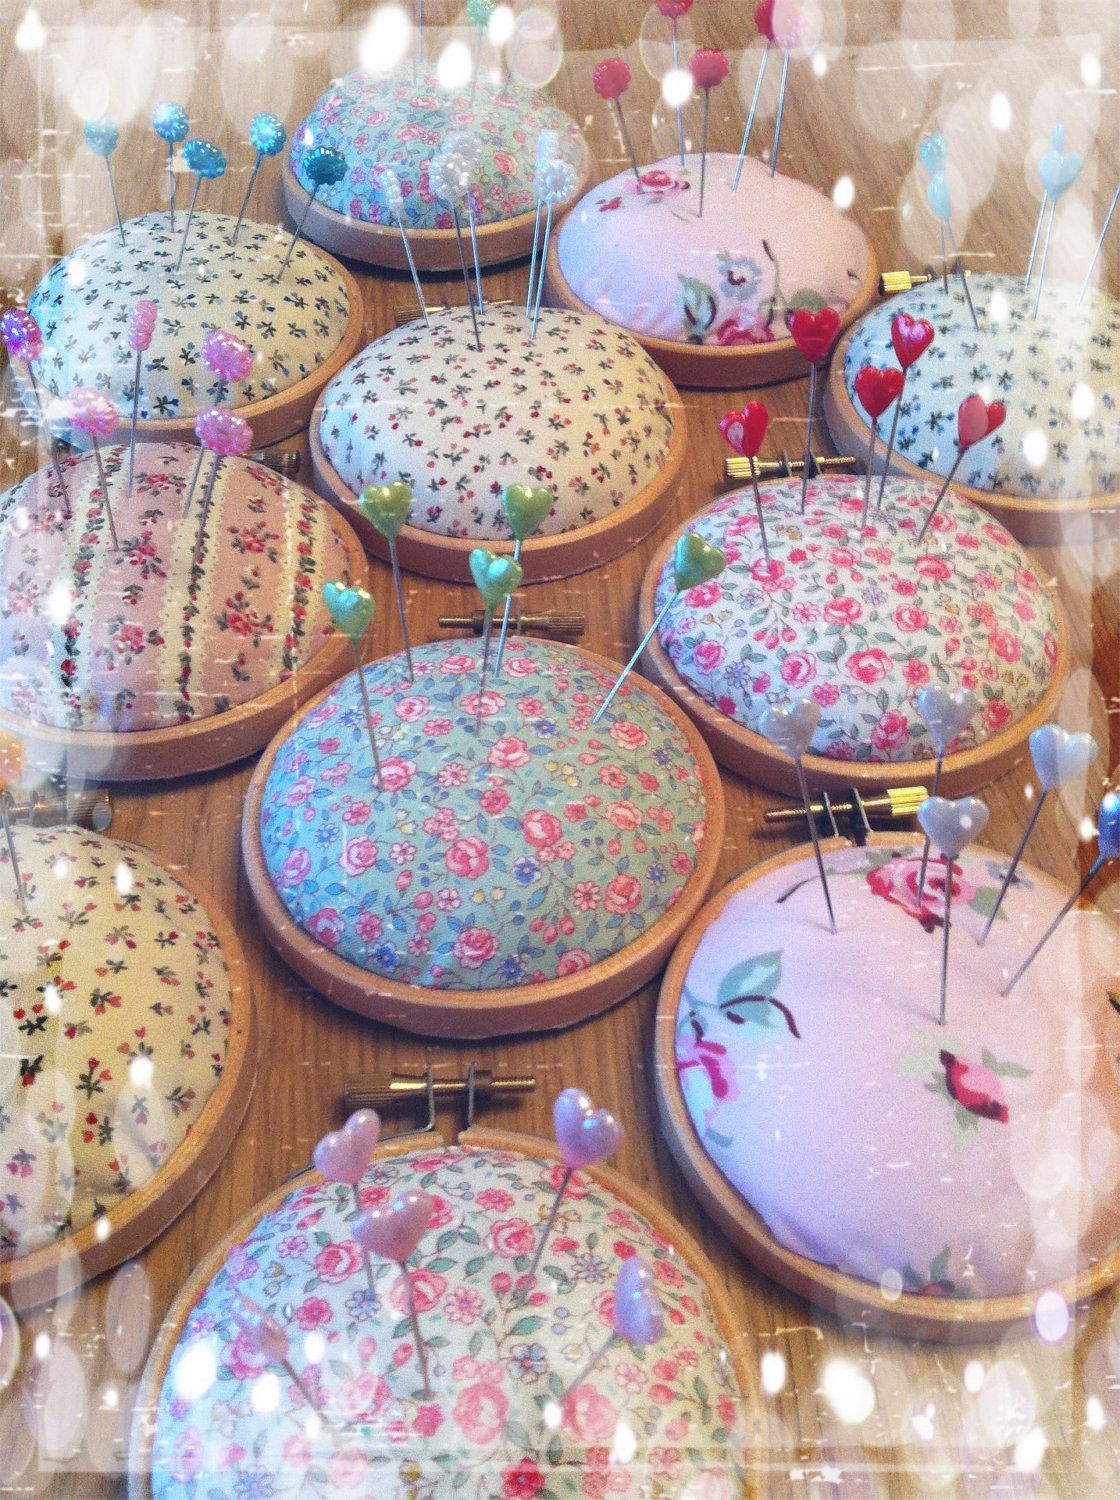 Embroidery hoop pincushion! This is so simple! I love it!                                                                                                                                                                                 More